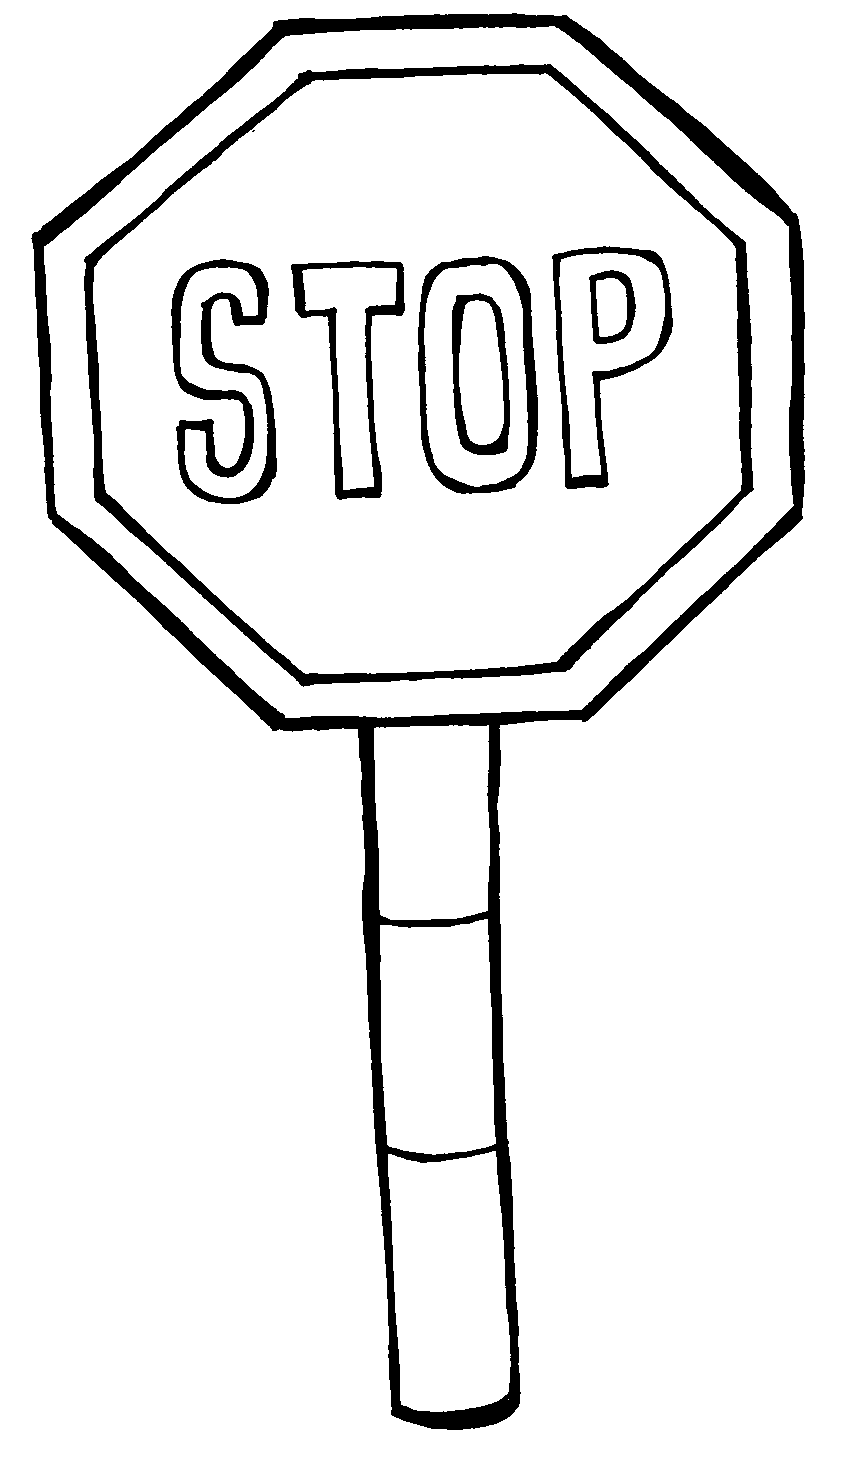 847x1457 Stop Sign Coloring Pages Print Stop Sign Coloring Page. Kids